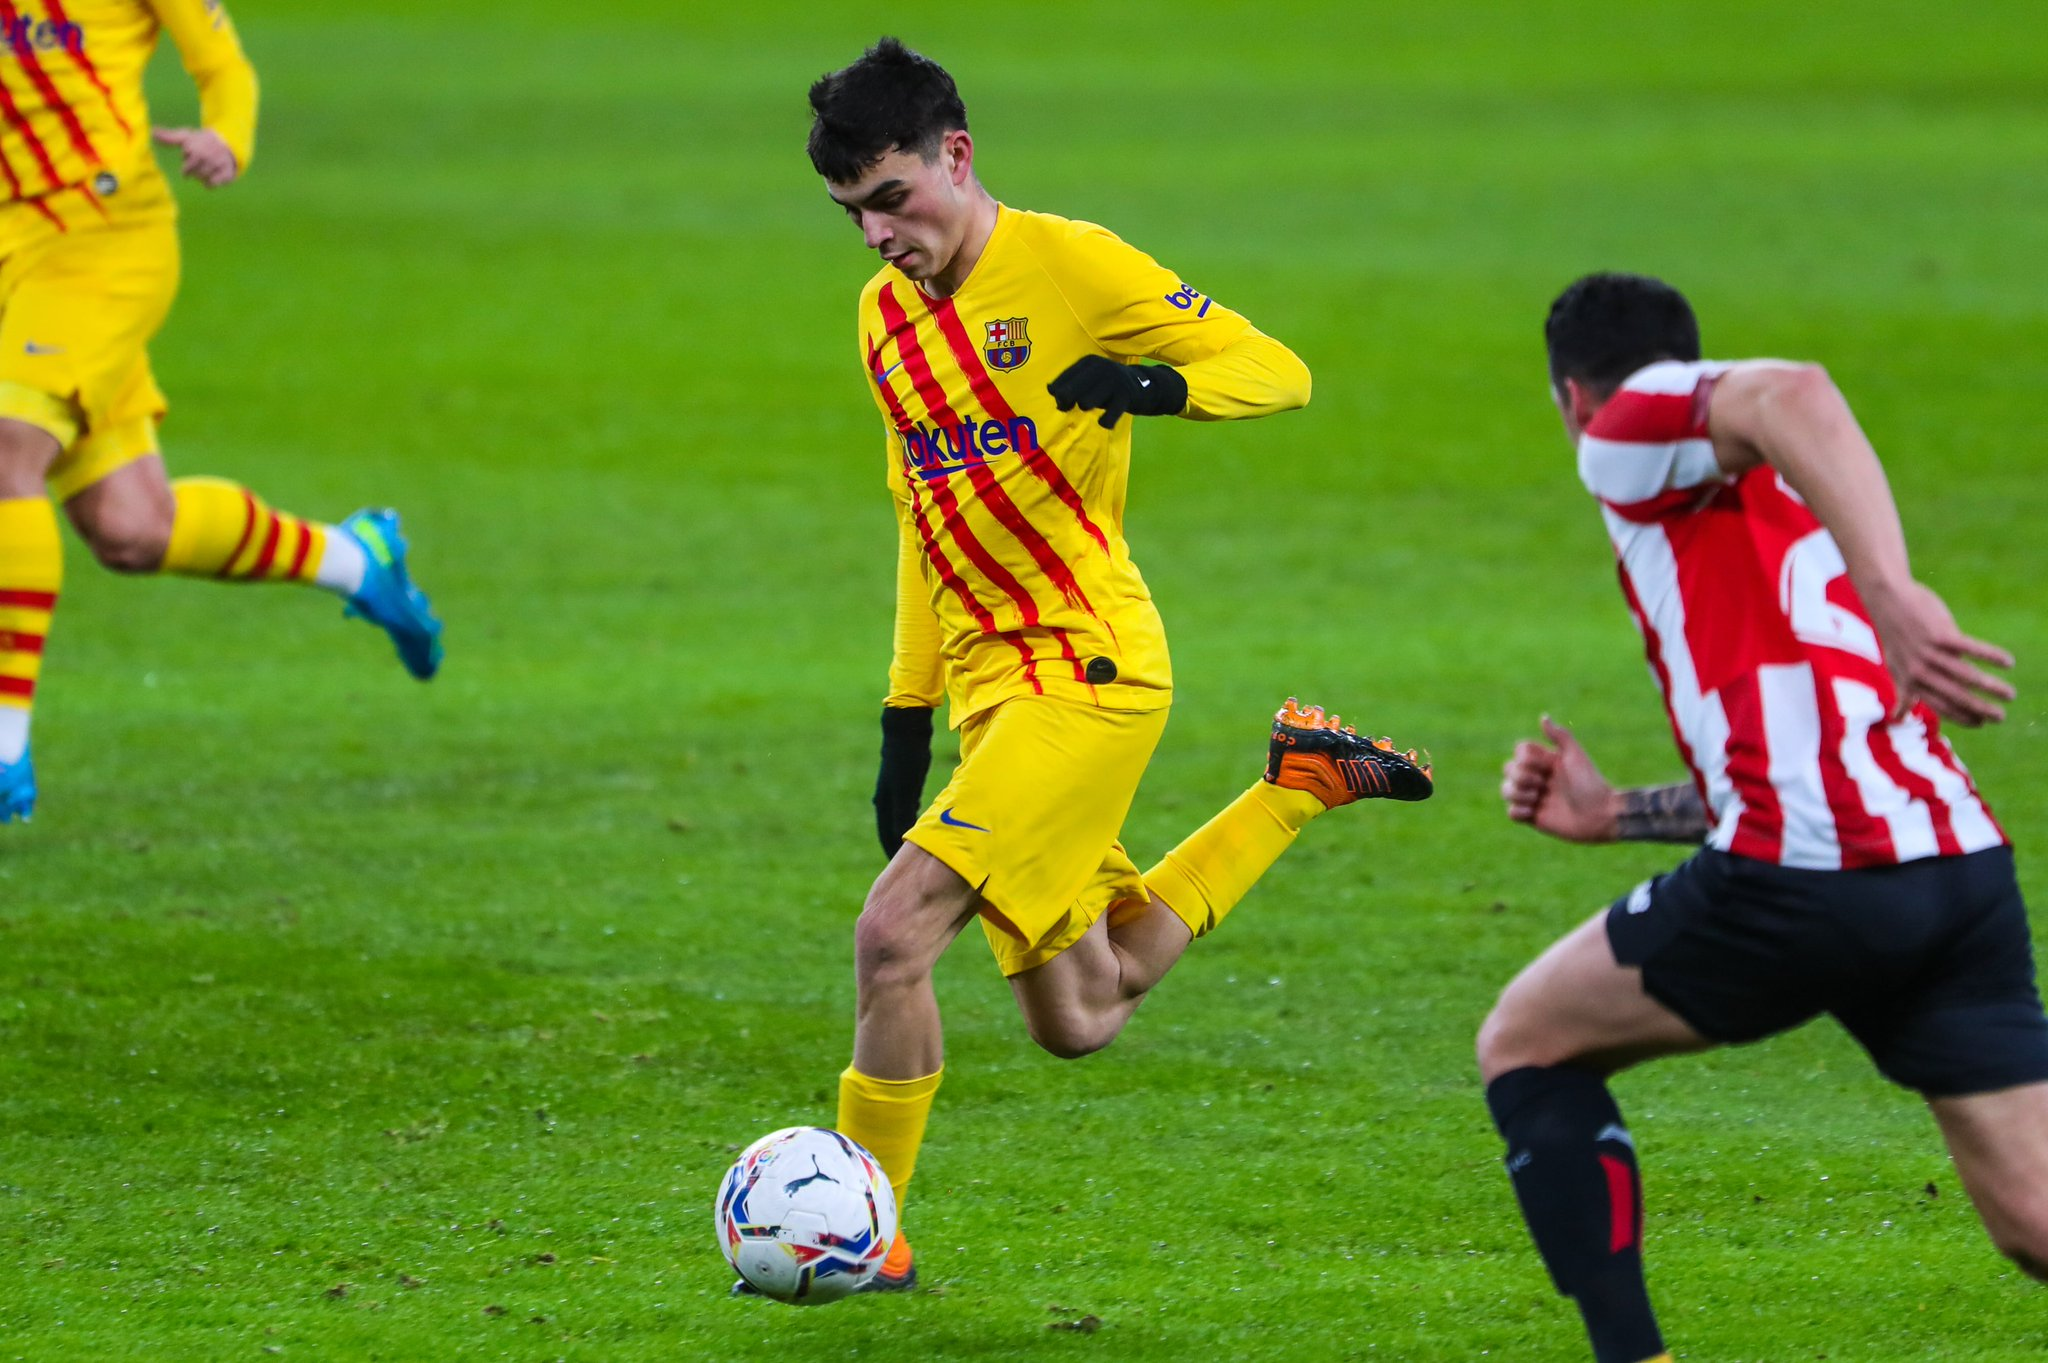 Athletic - FC Barcelona